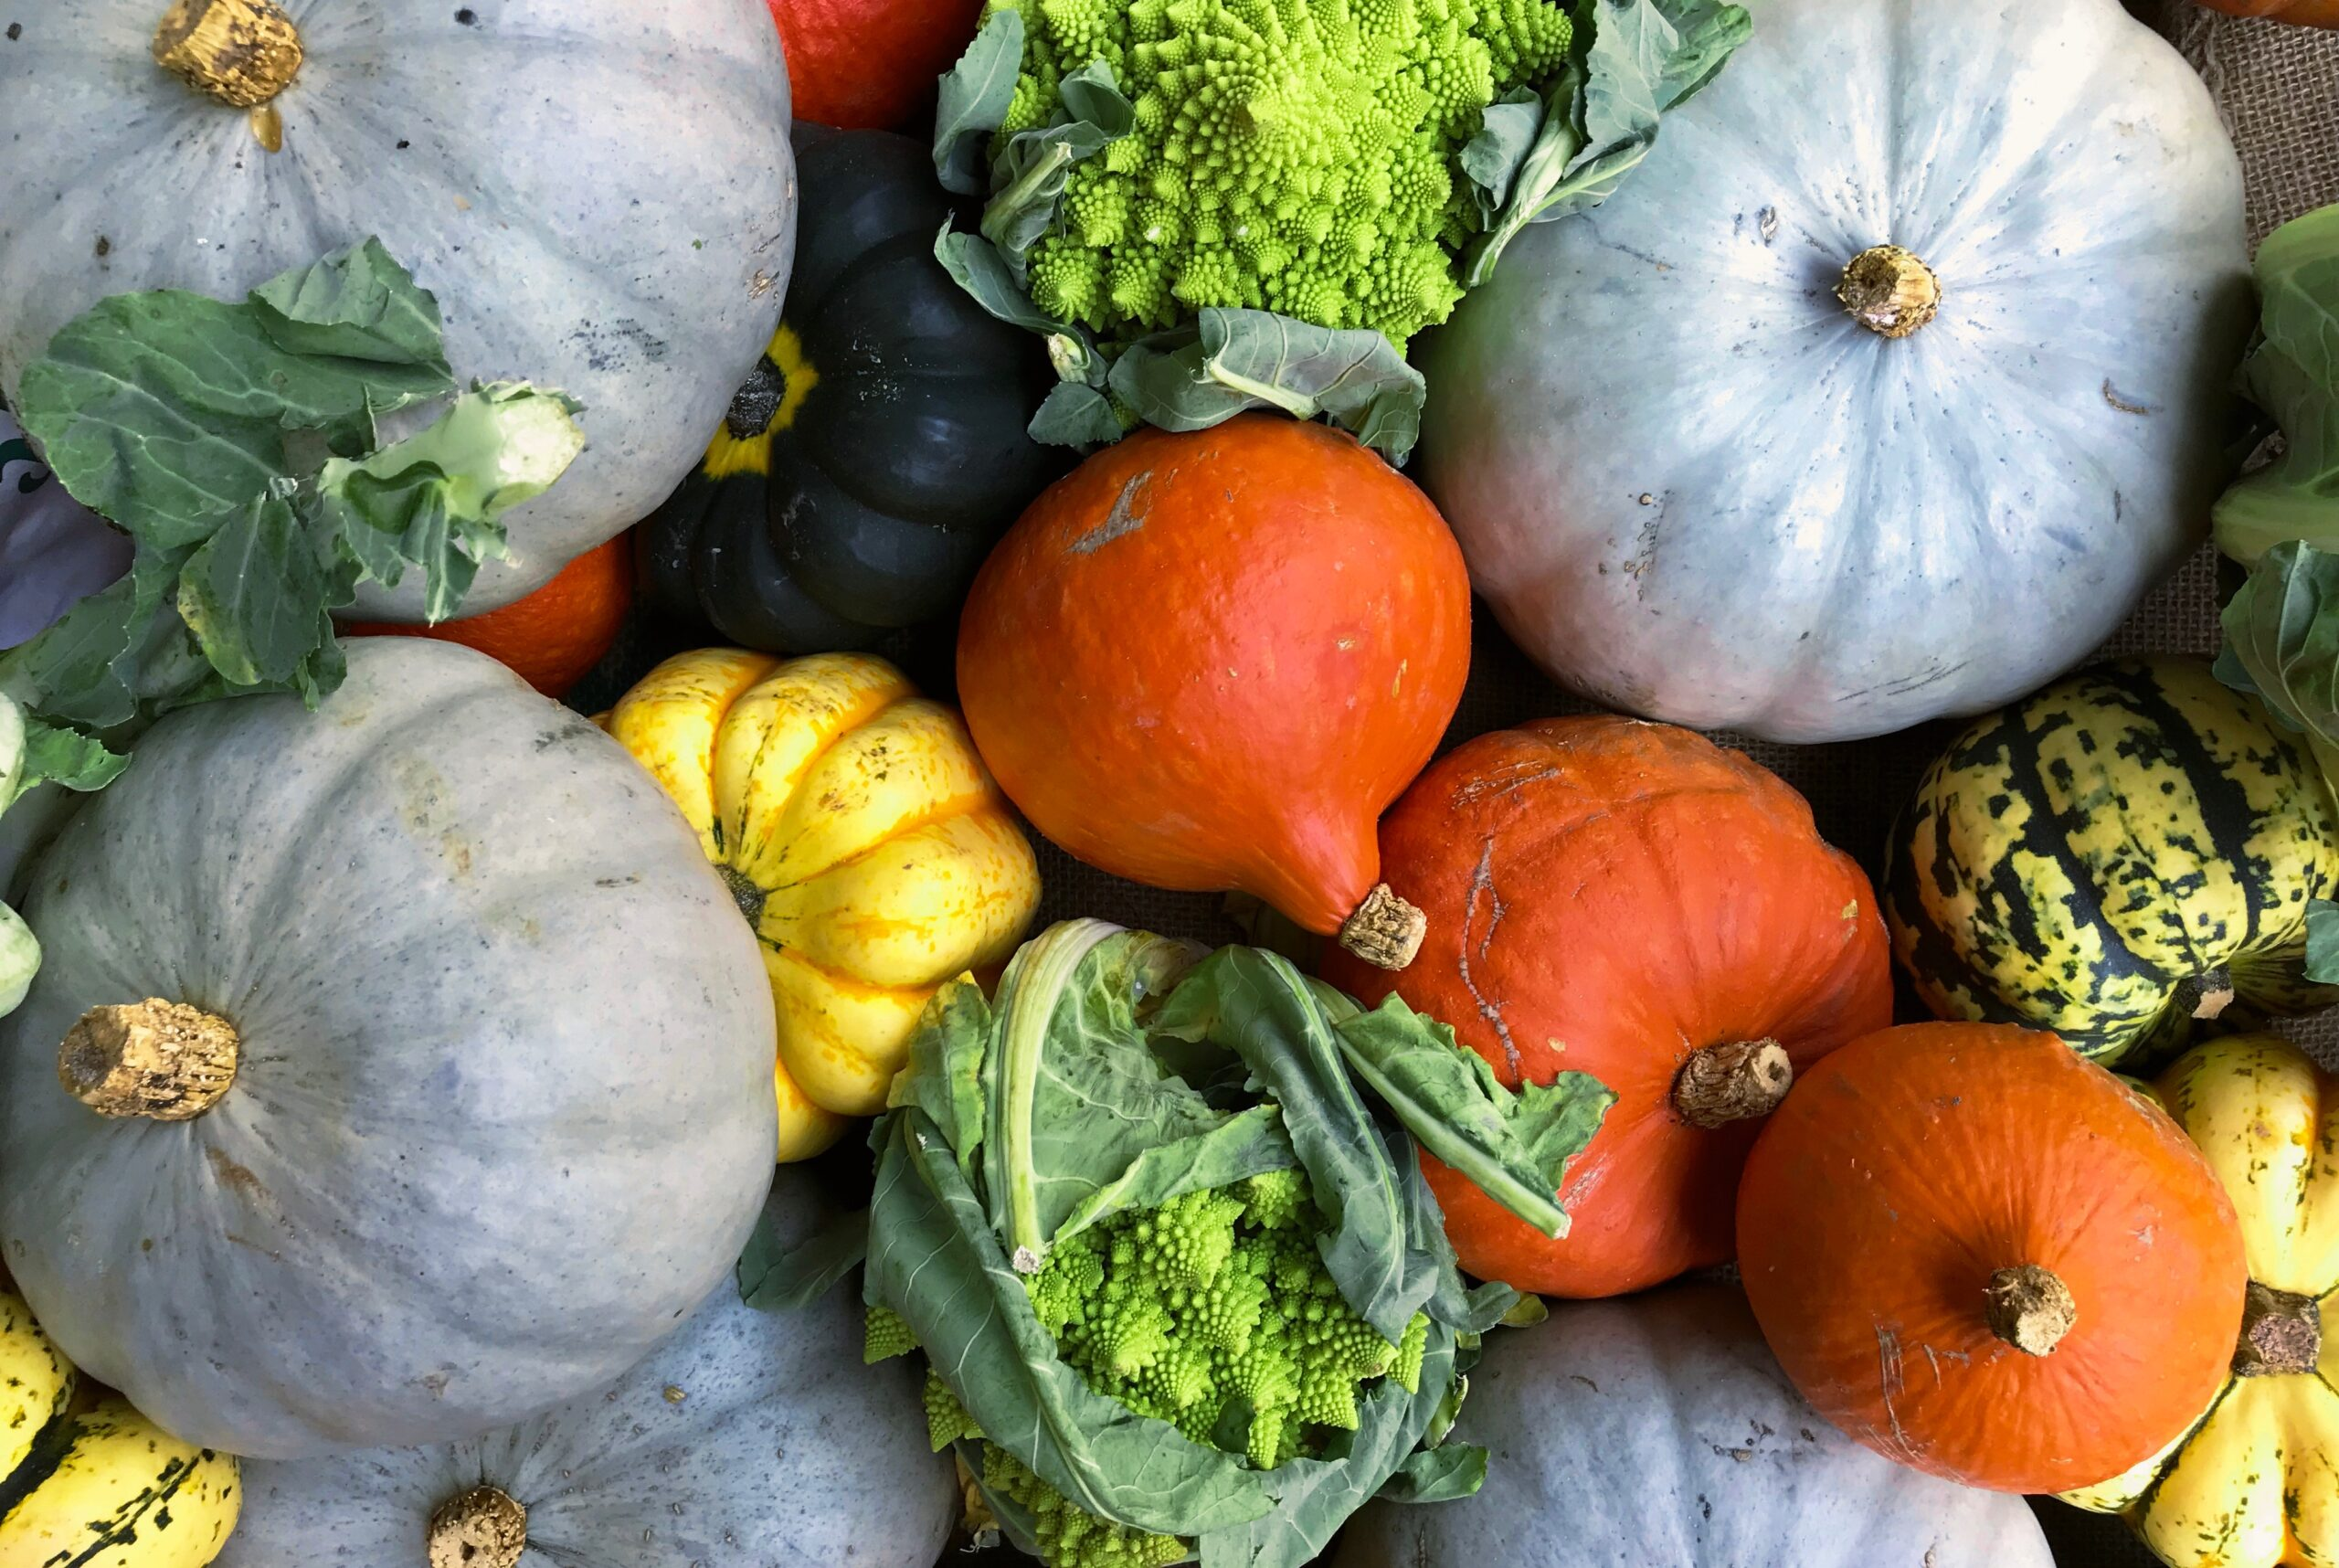 Seasonal fruits and vegetables – Fall | Fruits et légumes de saison – Automne